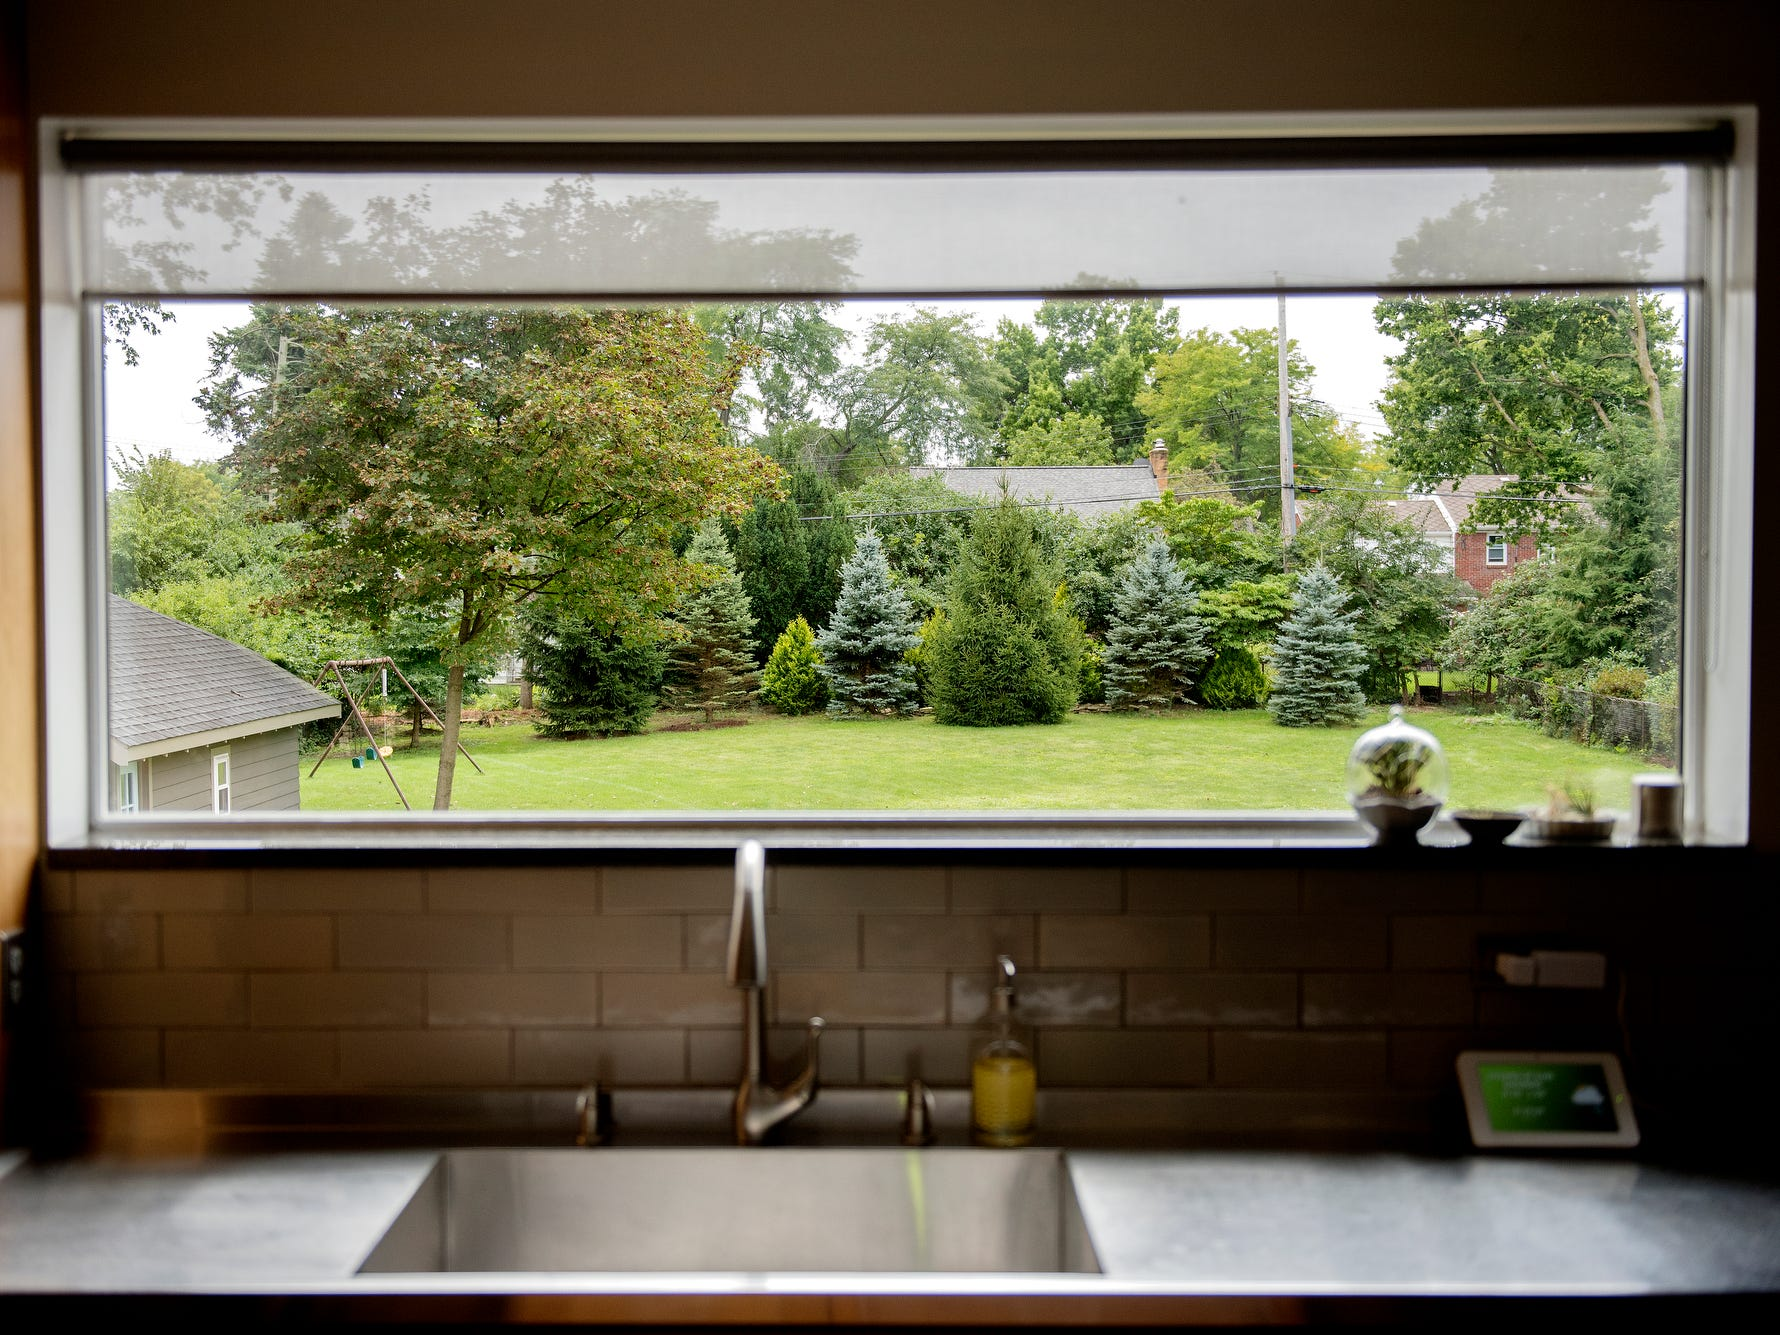 A large window facing the backyard is positioned in front of the main kitchen sink at the Purchases' Moores River Drive home on Thursday, Sept. 5, 2018, Lansing. The home is one of five homes that will be featured on the Sept. 16 Lansing Area Historical Home Tour.